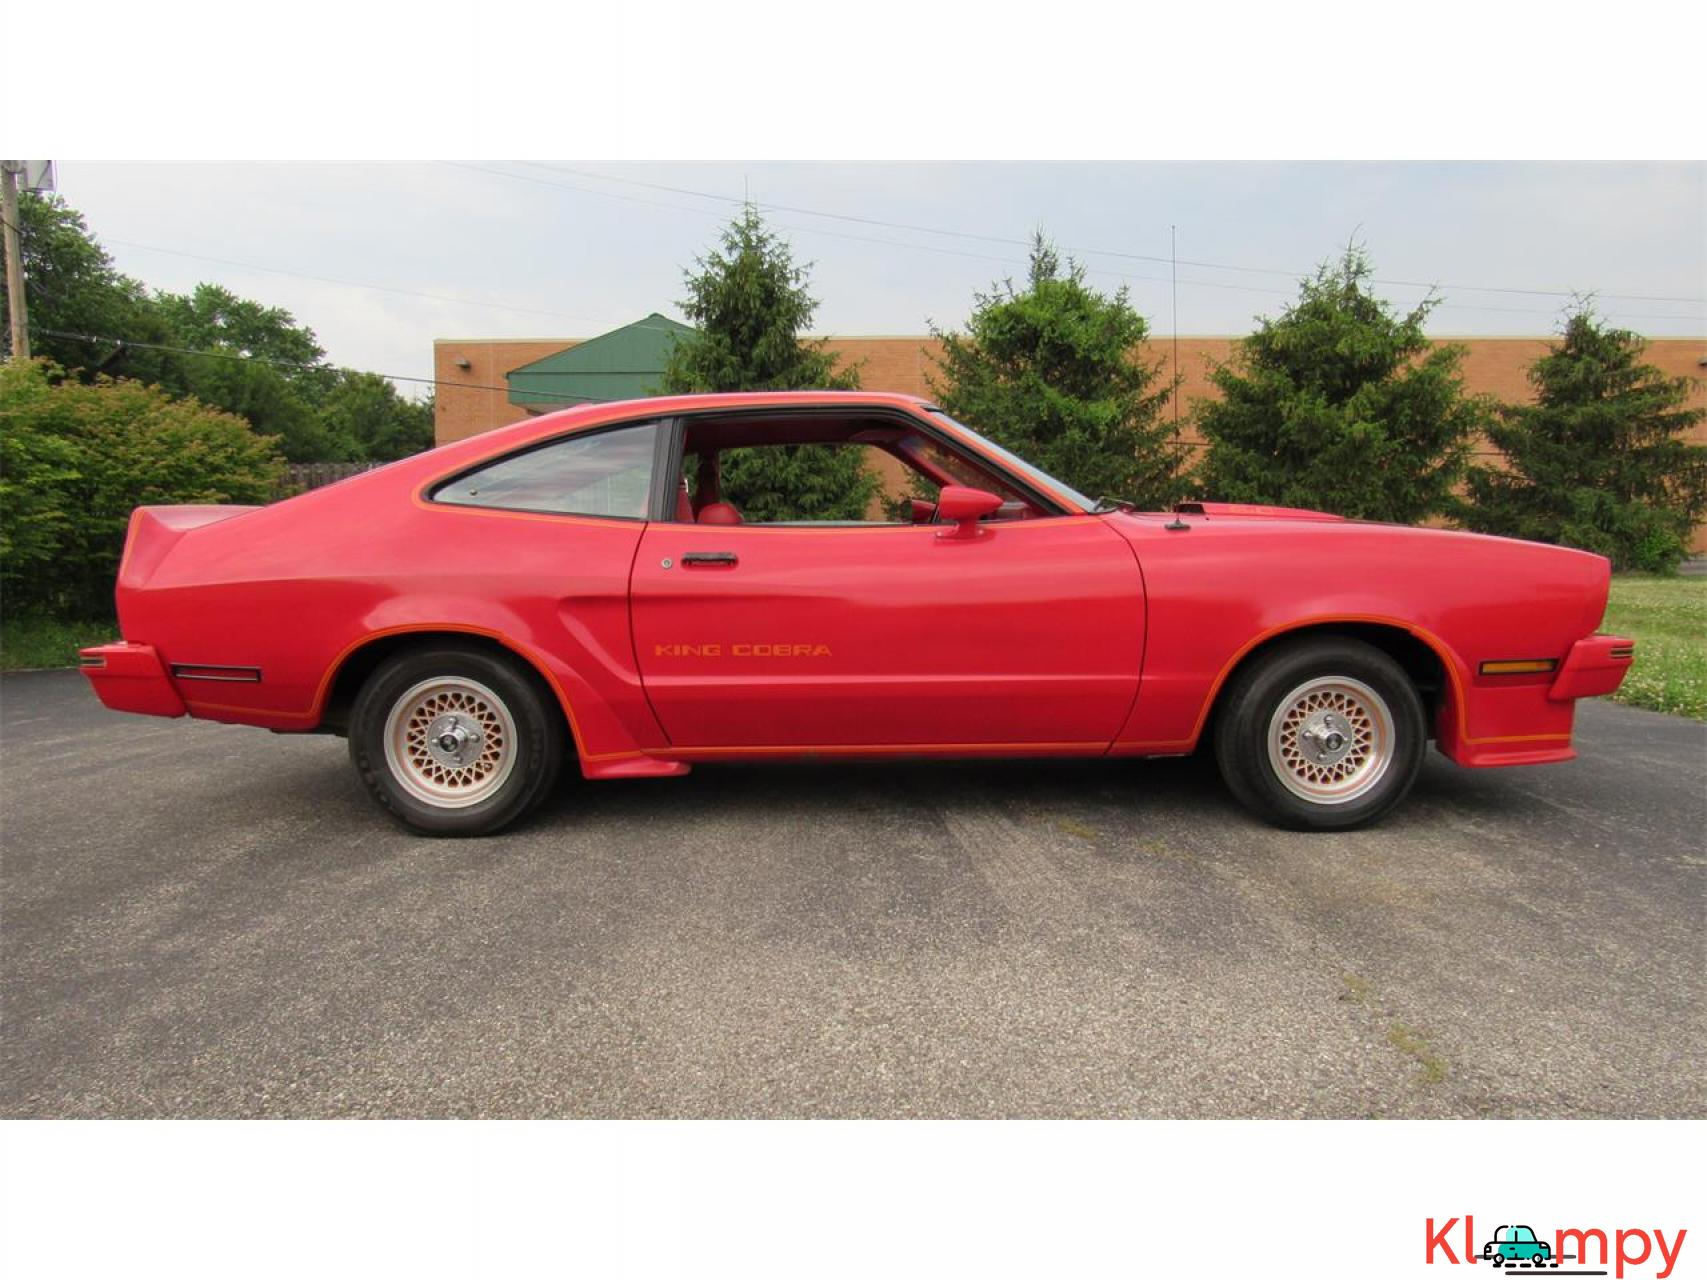 1978 Ford Mustang 302ci V8 Red - 1/17